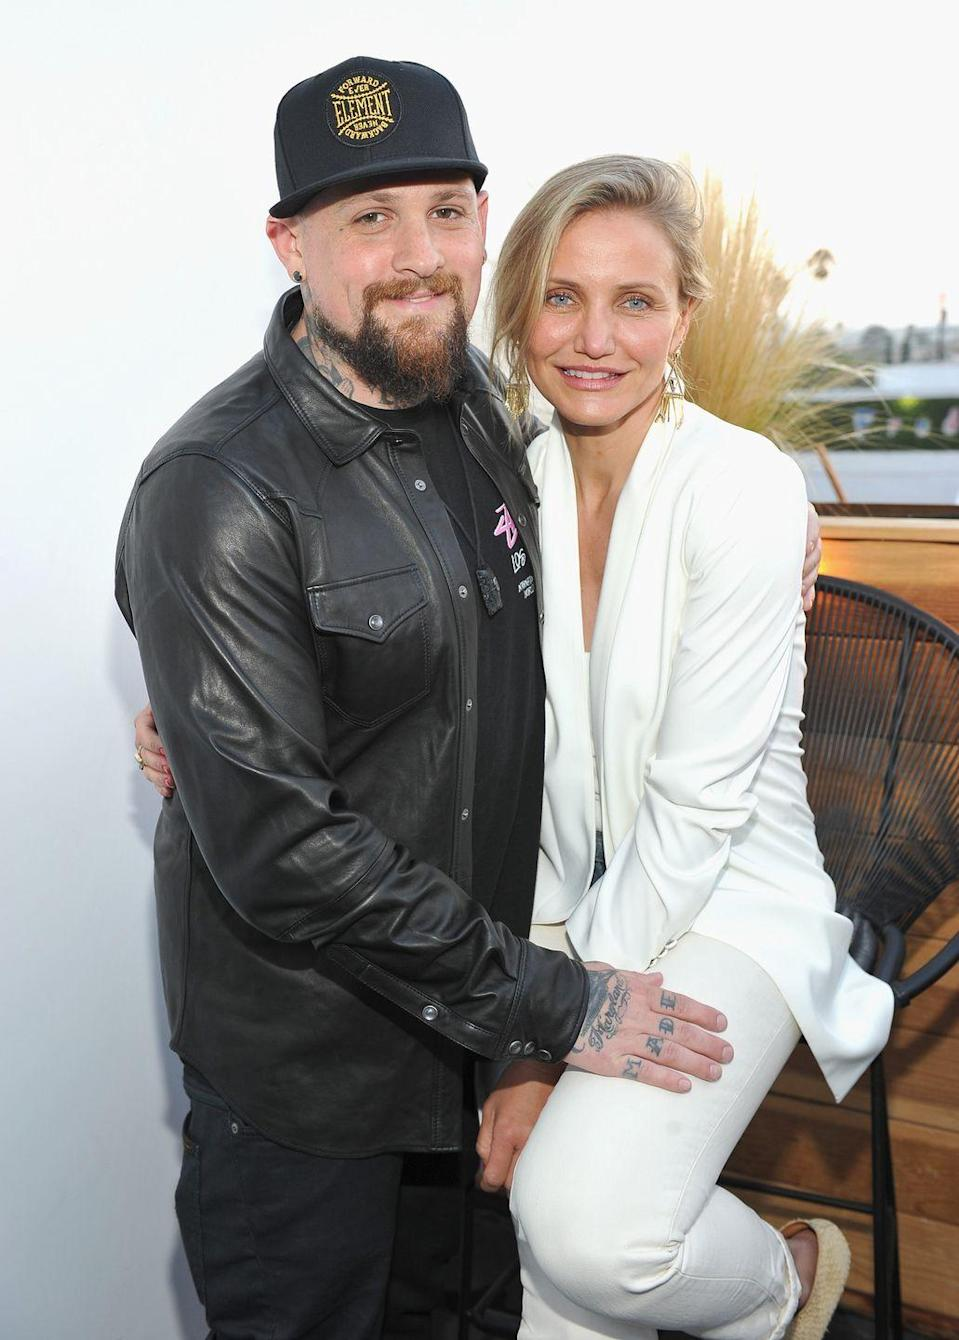 "<p>Nicole Richie is behind this pairing. The reality star, who is married to Madden's brother, Joel, took credit for the couple during an appearance on <a href=""https://www.usmagazine.com/celebrity-news/news/nicole-richie-talks-cameron-diaz-and-benji-madden-is-happy-for-them-201497/"" rel=""nofollow noopener"" target=""_blank"" data-ylk=""slk:Watch What Happens Live"" class=""link rapid-noclick-resp""><em>Watch What Happens Live</em></a>.</p><p>""I approve of anything that's going to make Benji happy,"" she said. ""I'm going to take responsibility for everything!"" </p>"